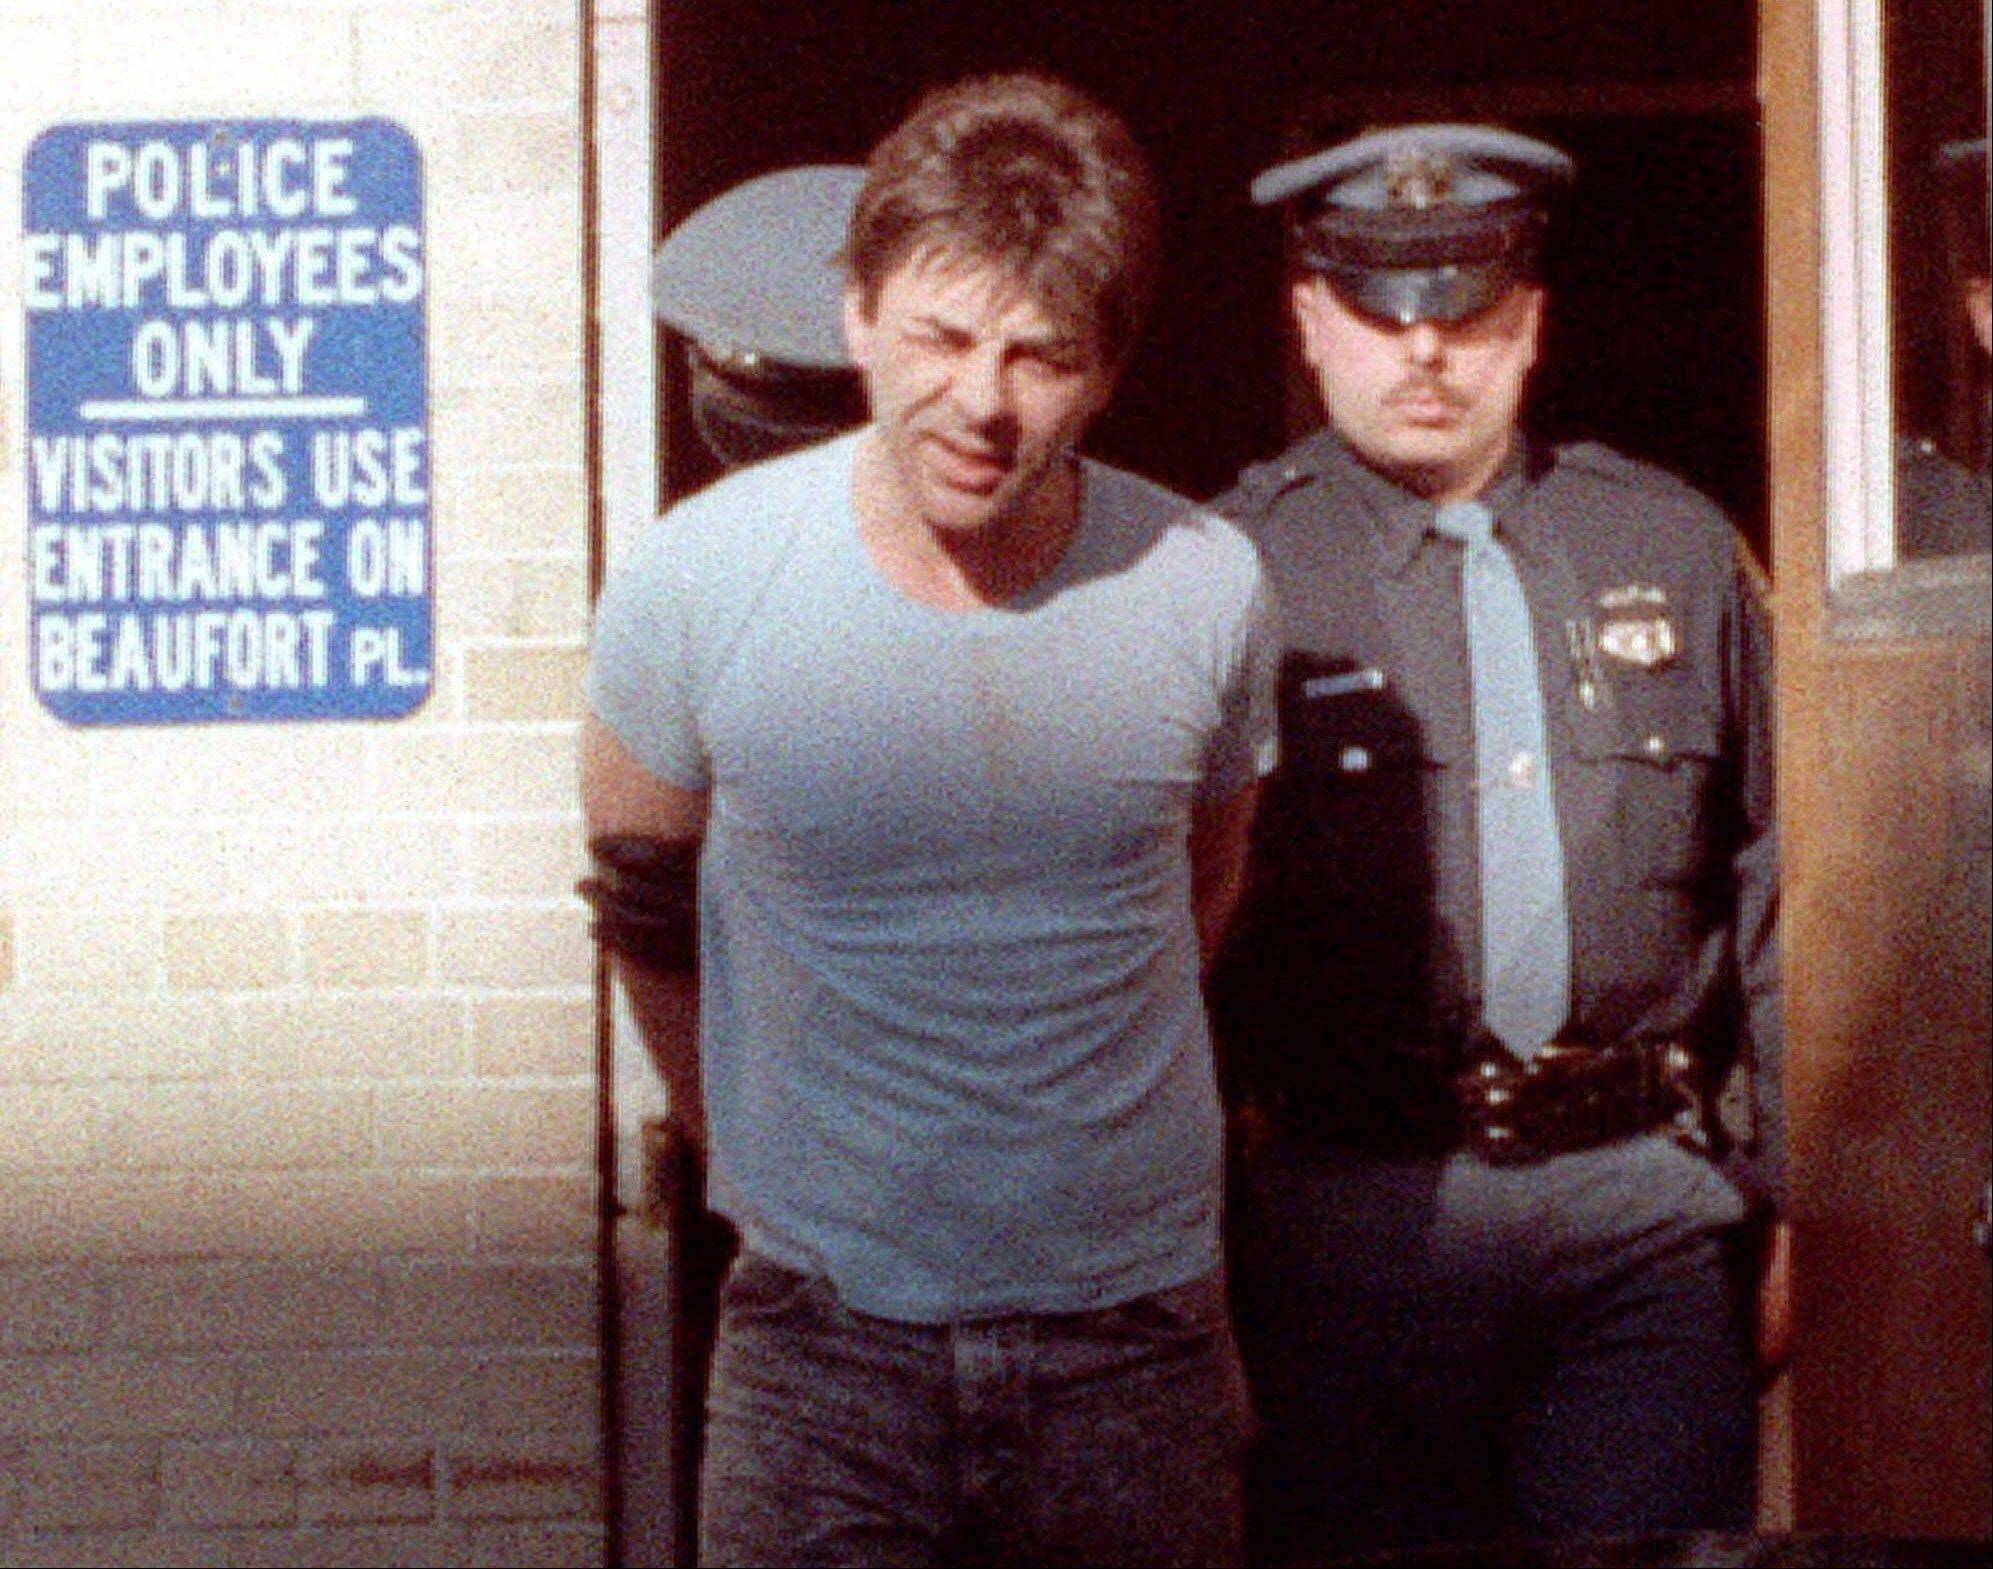 Robert Kosilek is led to the county jail following his arraignment on drunken driving charges, in New Rochelle, N.Y., in 1990. Kosilek was convicted in the 1990 murder of his wife in Massachusetts, and has been living as a woman, Michelle Kosilek, and receiving hormone treatments while serving life in prison in Massachusetts.